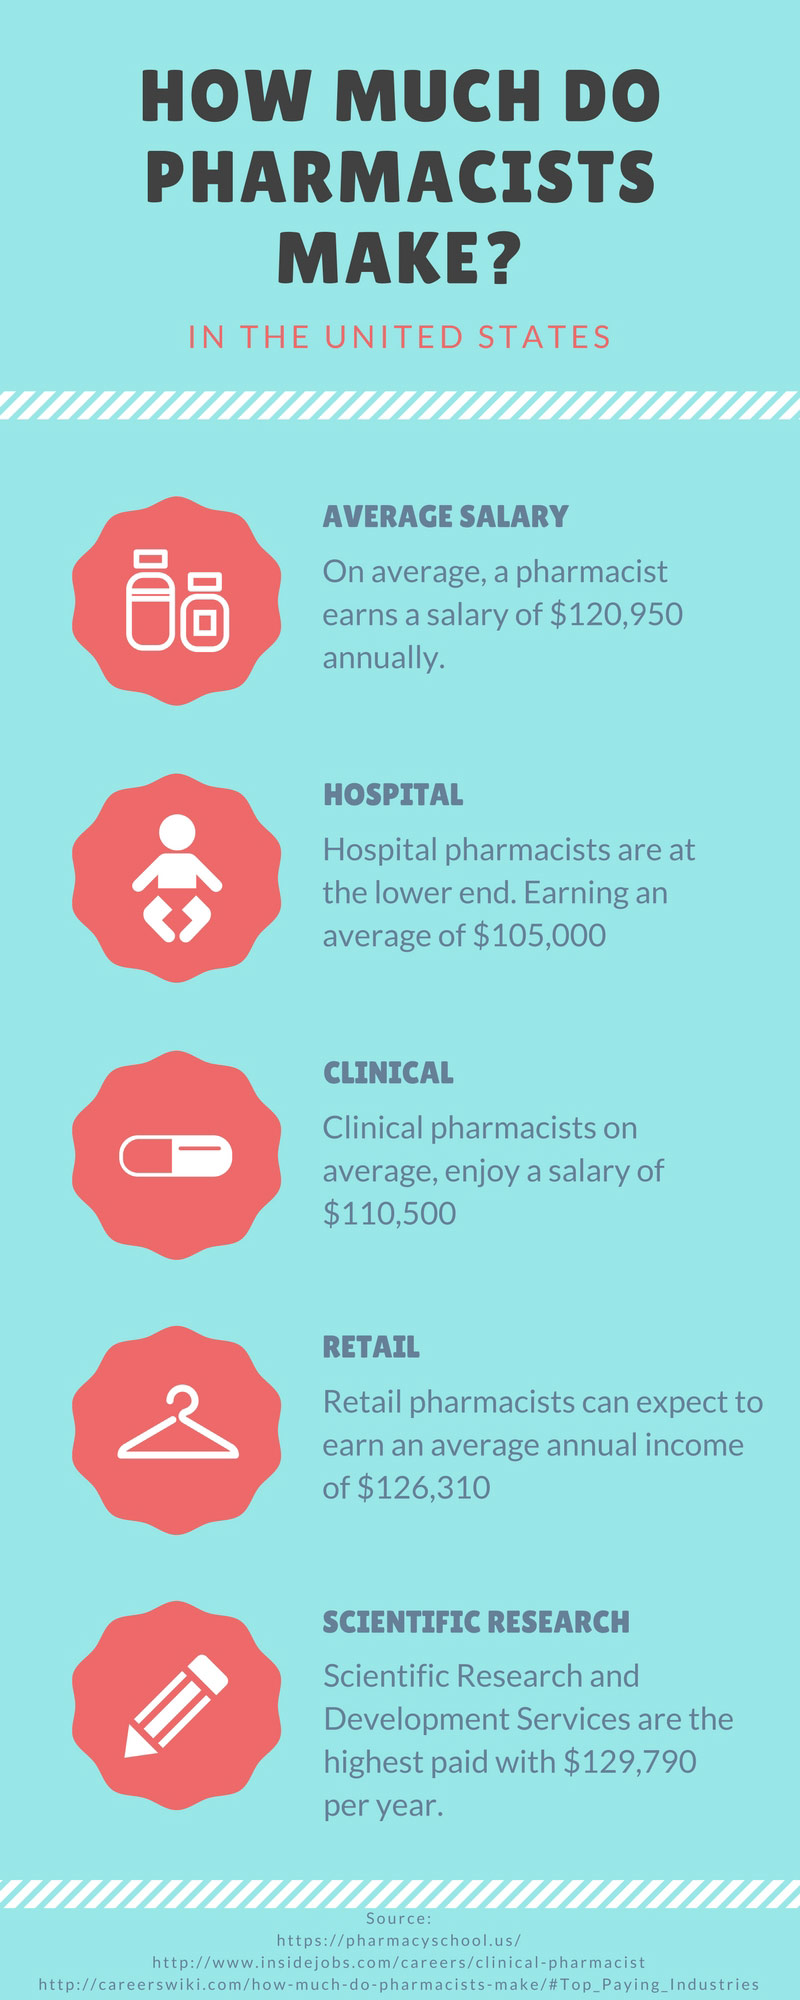 infographic on how much do pharmacists make in the united states